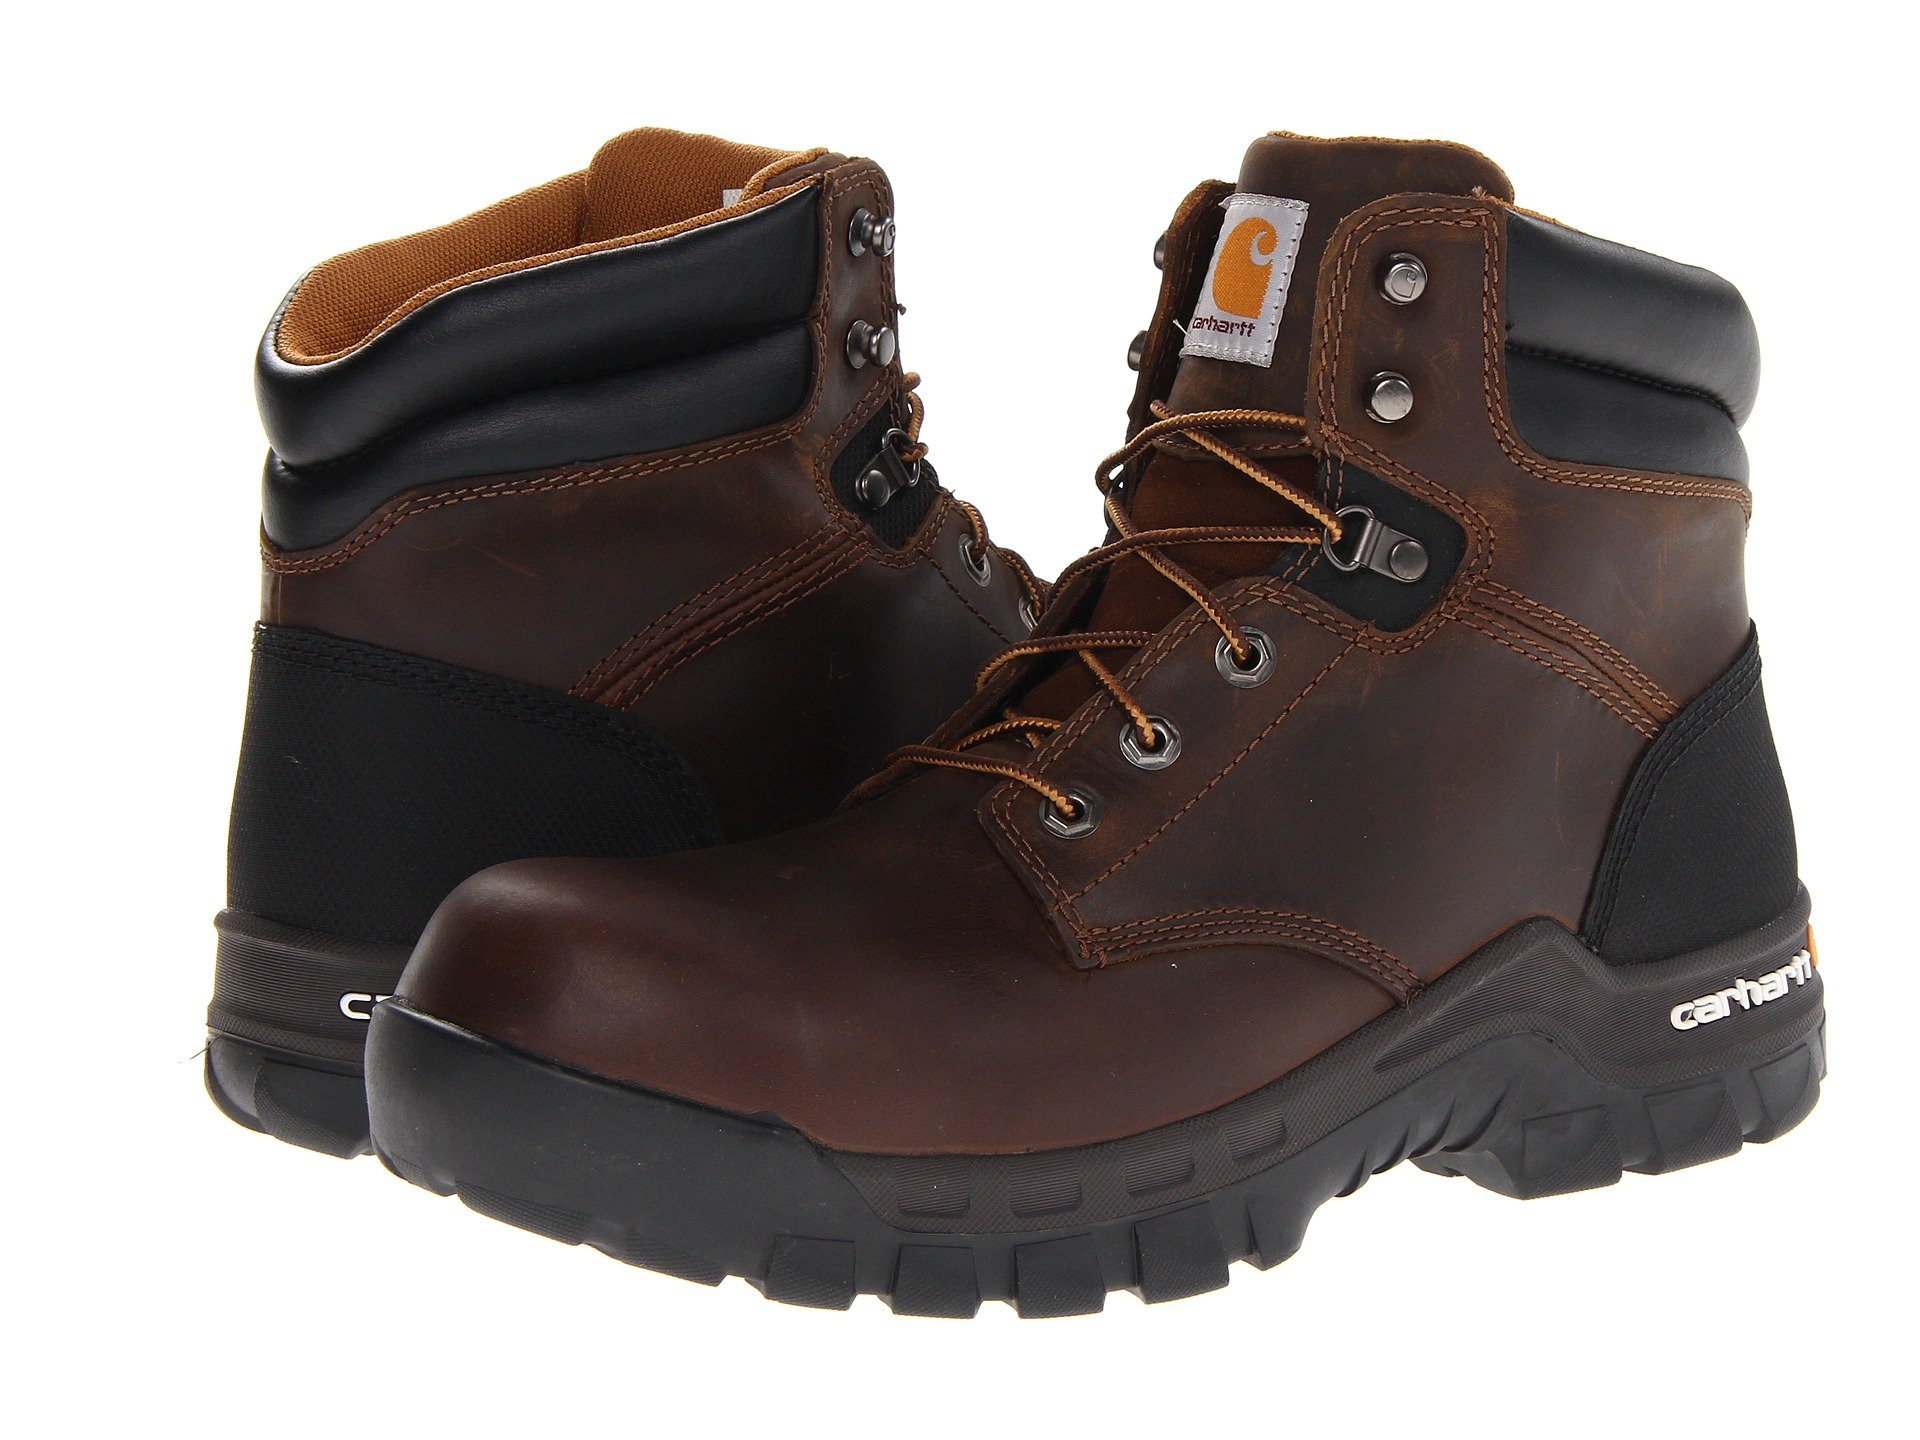 Men S Carhartt Work And Safety Boots Free Shipping Shoes Zappos